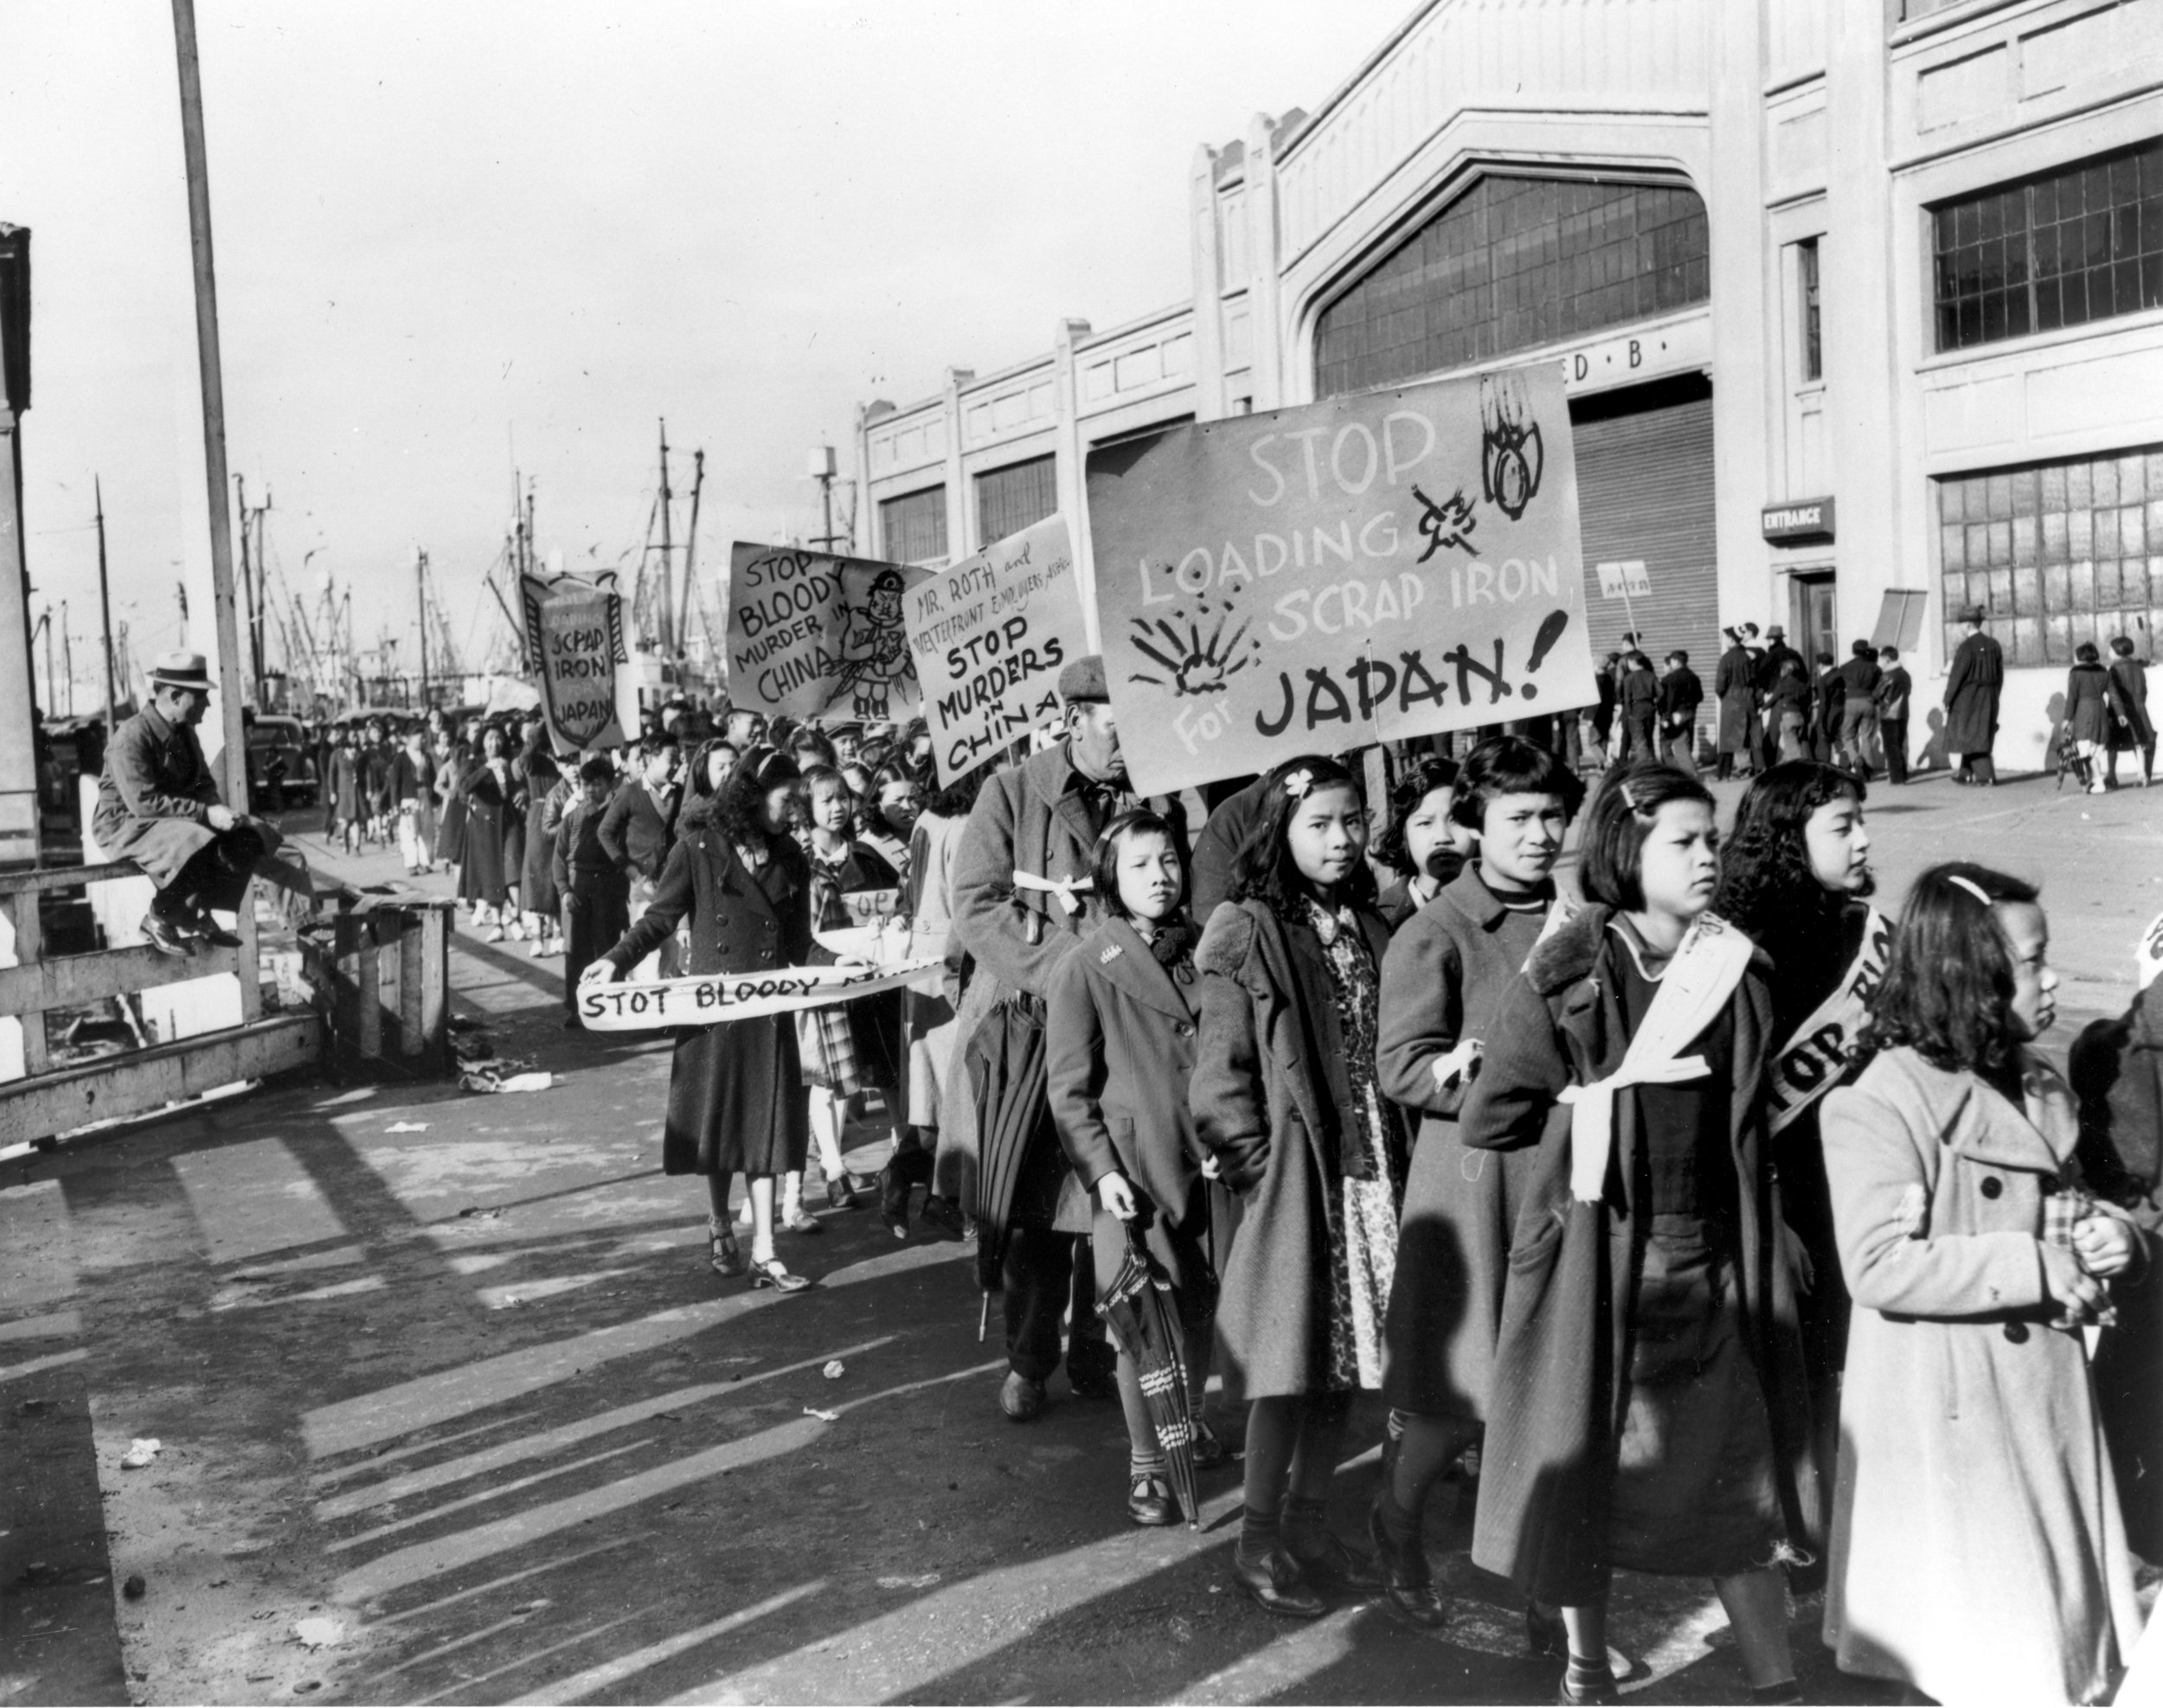 Protest march on San Francisco waterfront, 1938